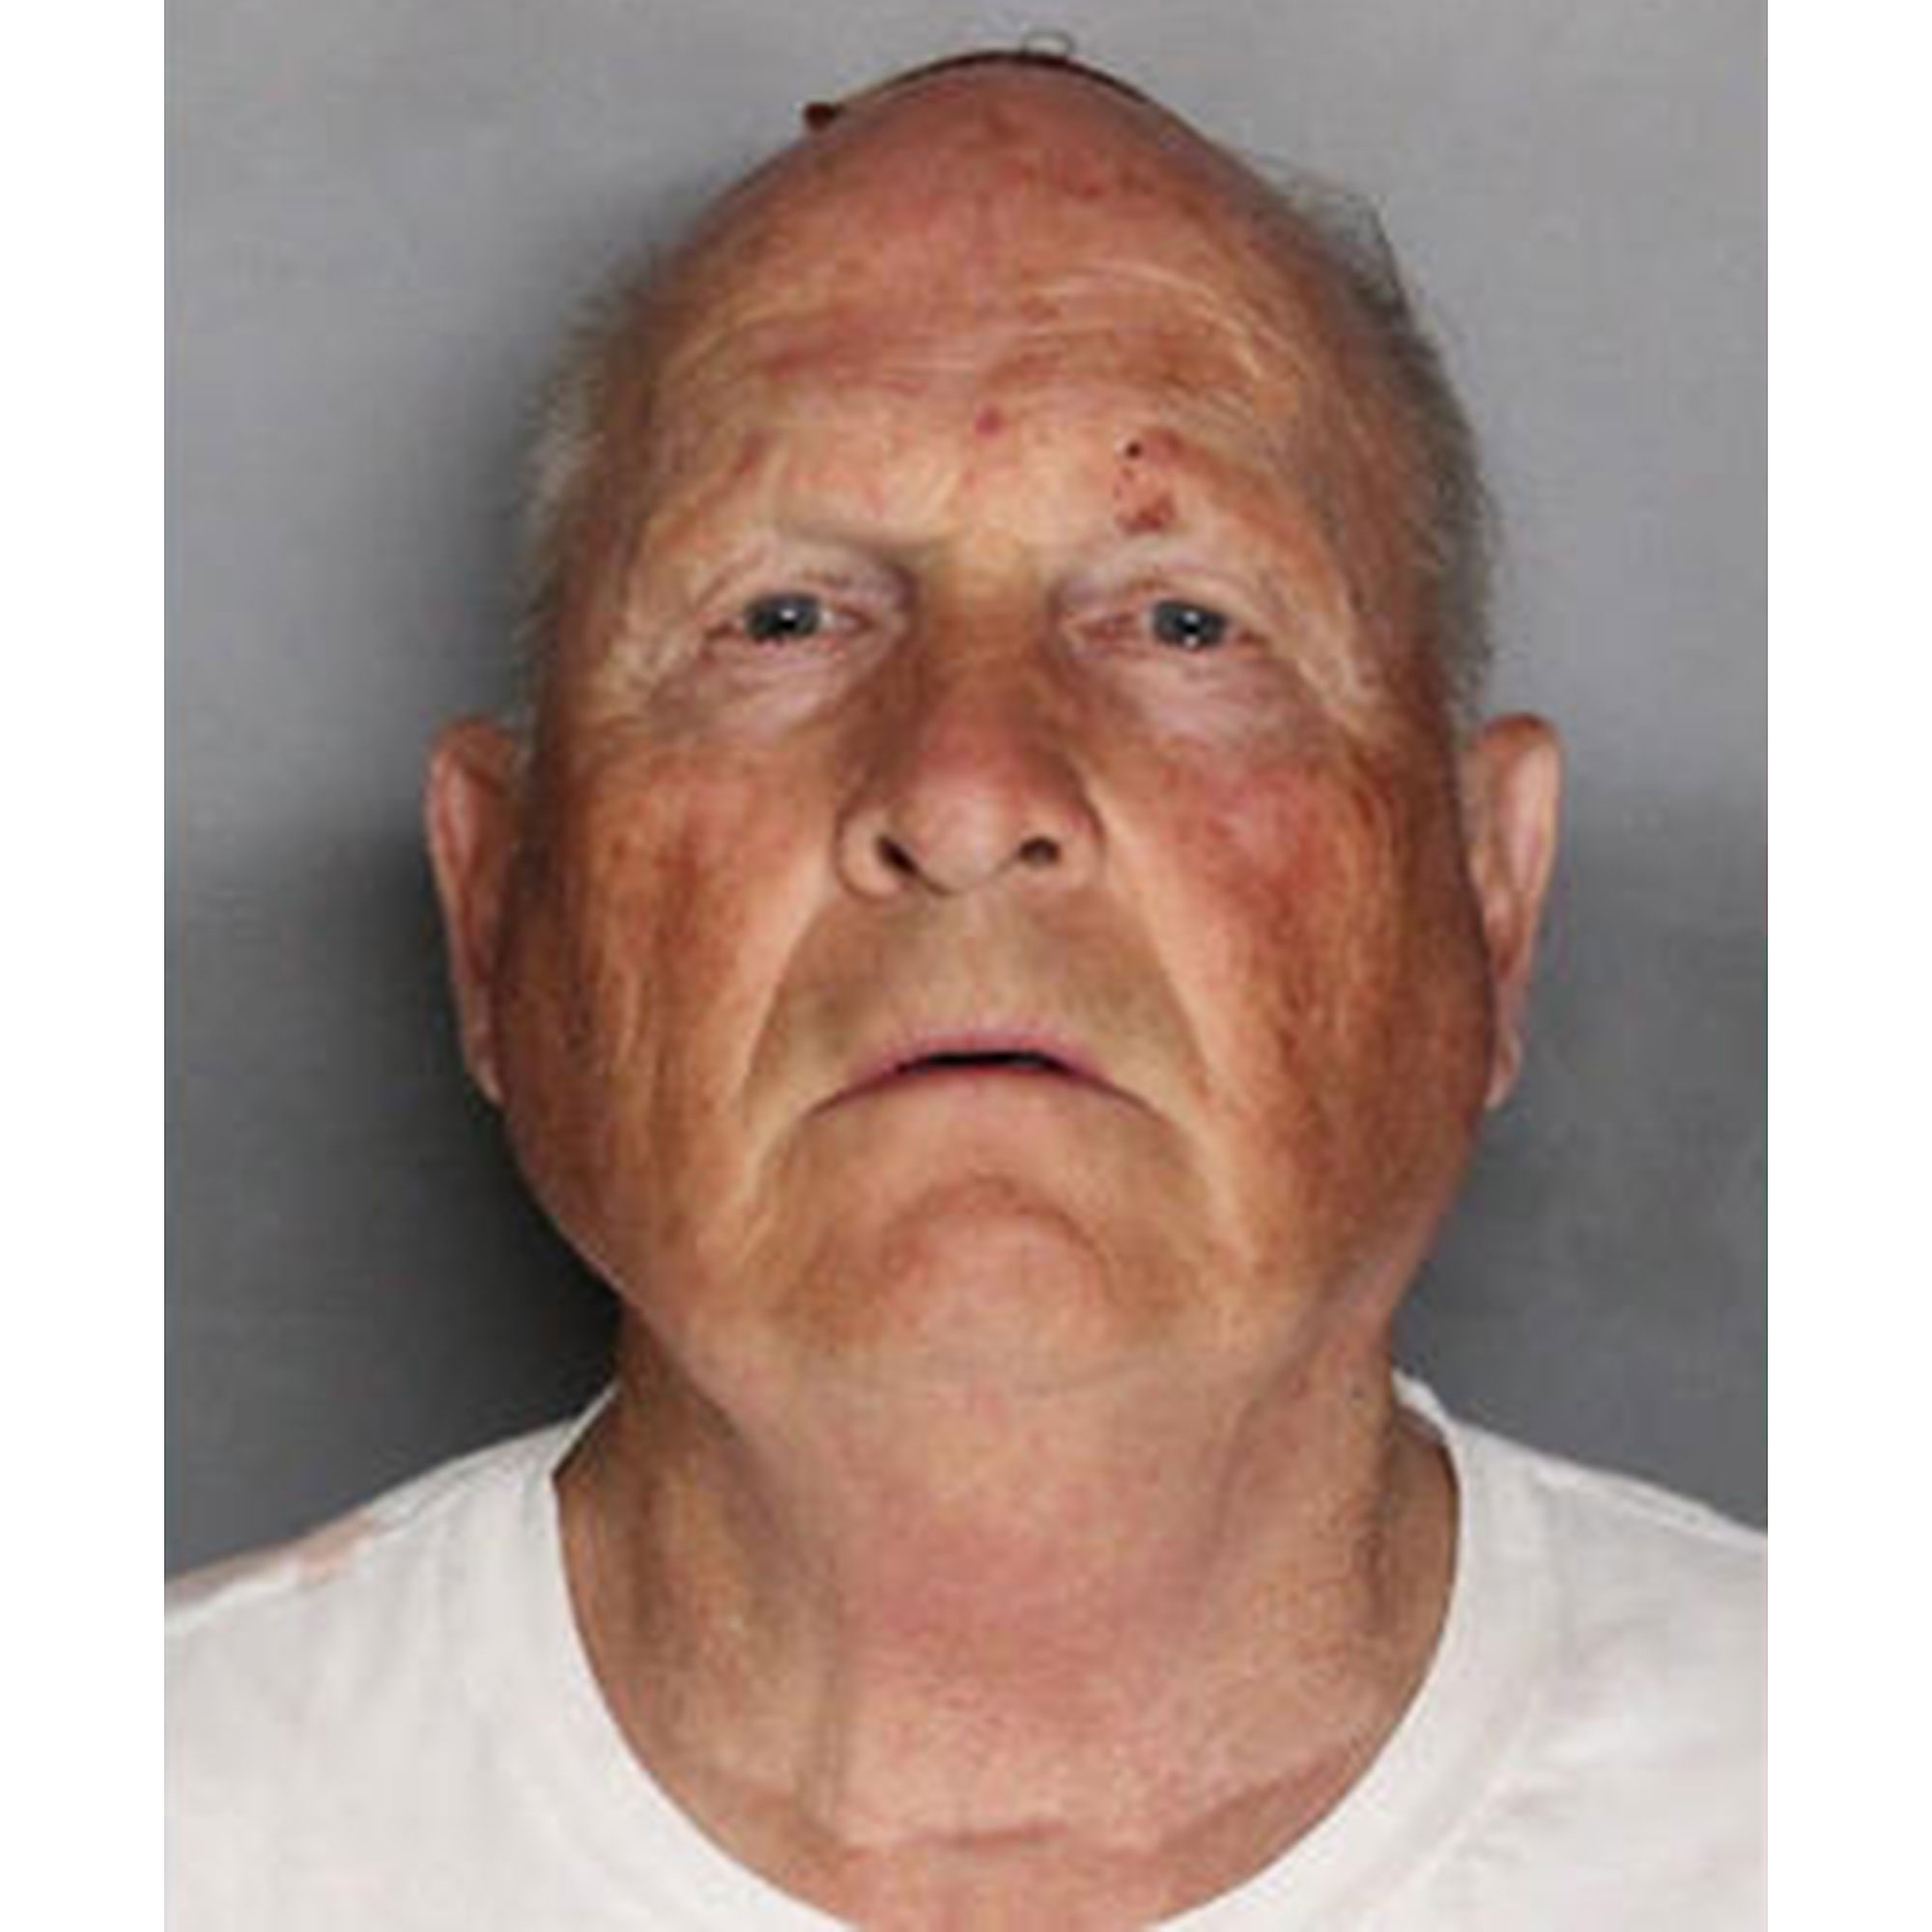 Golden State Killer Suspect Agrees to Plead Guilty | PEOPLE.com